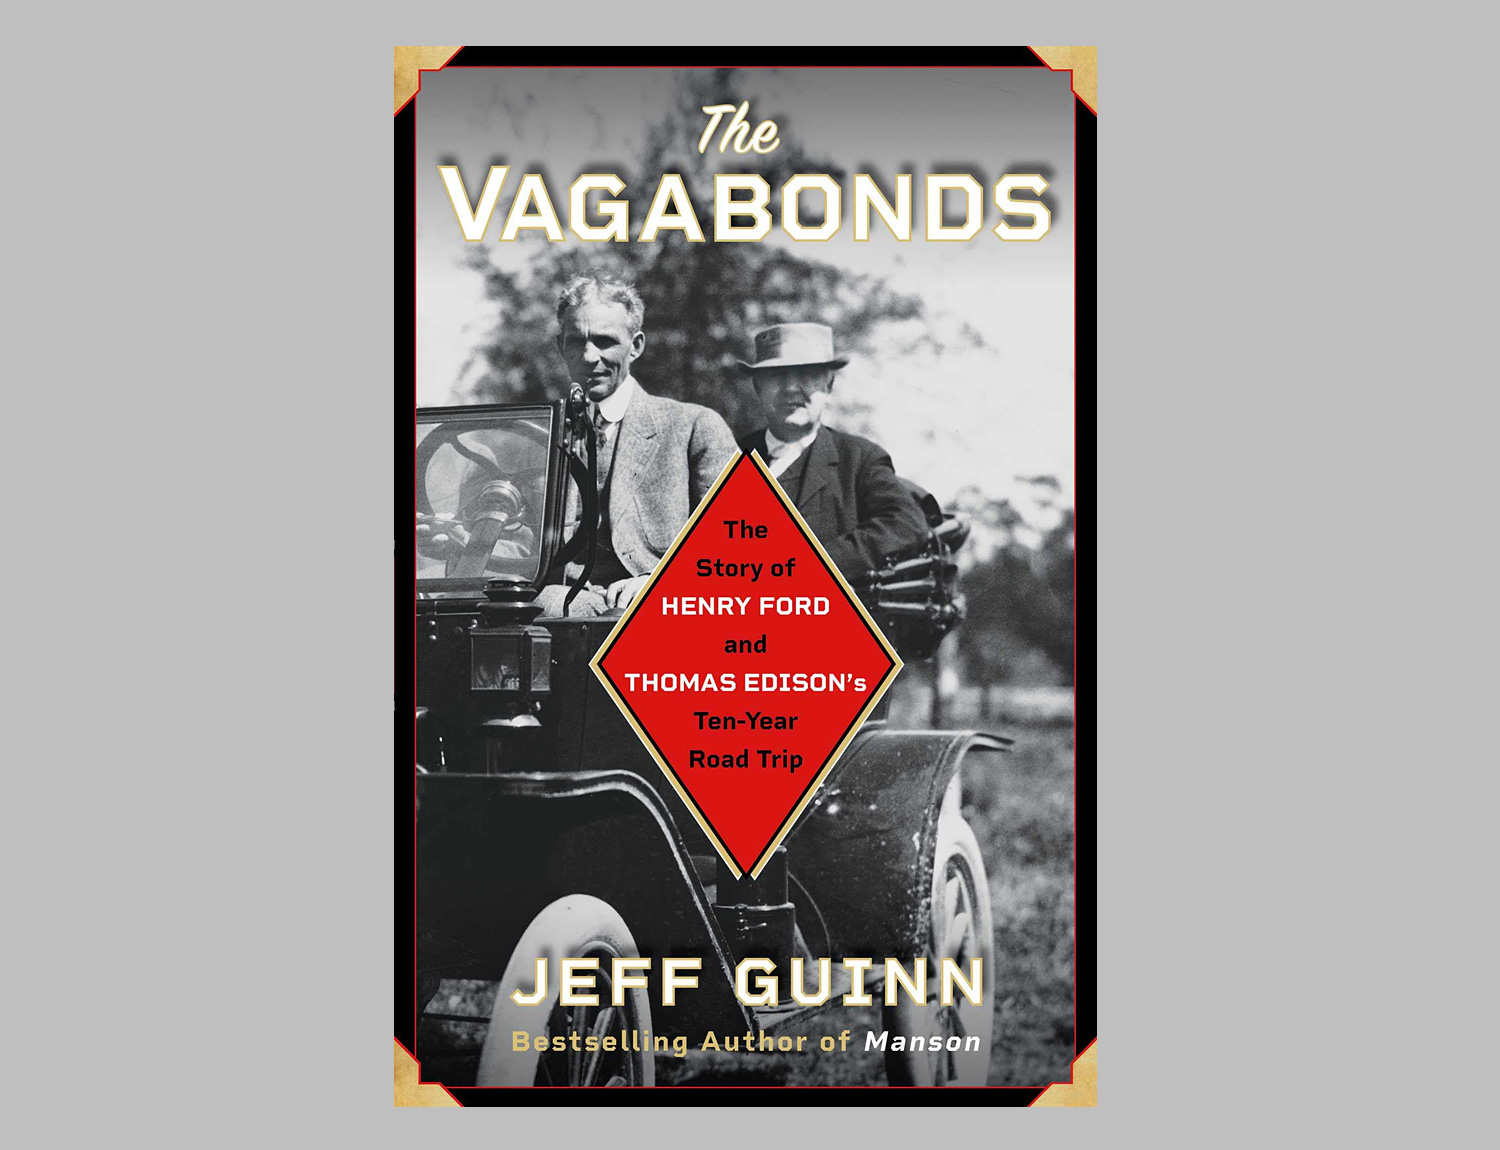 The Vagabonds: The Story of Henry Ford and Thomas Edison's Ten-Year Road Trip at werd.com